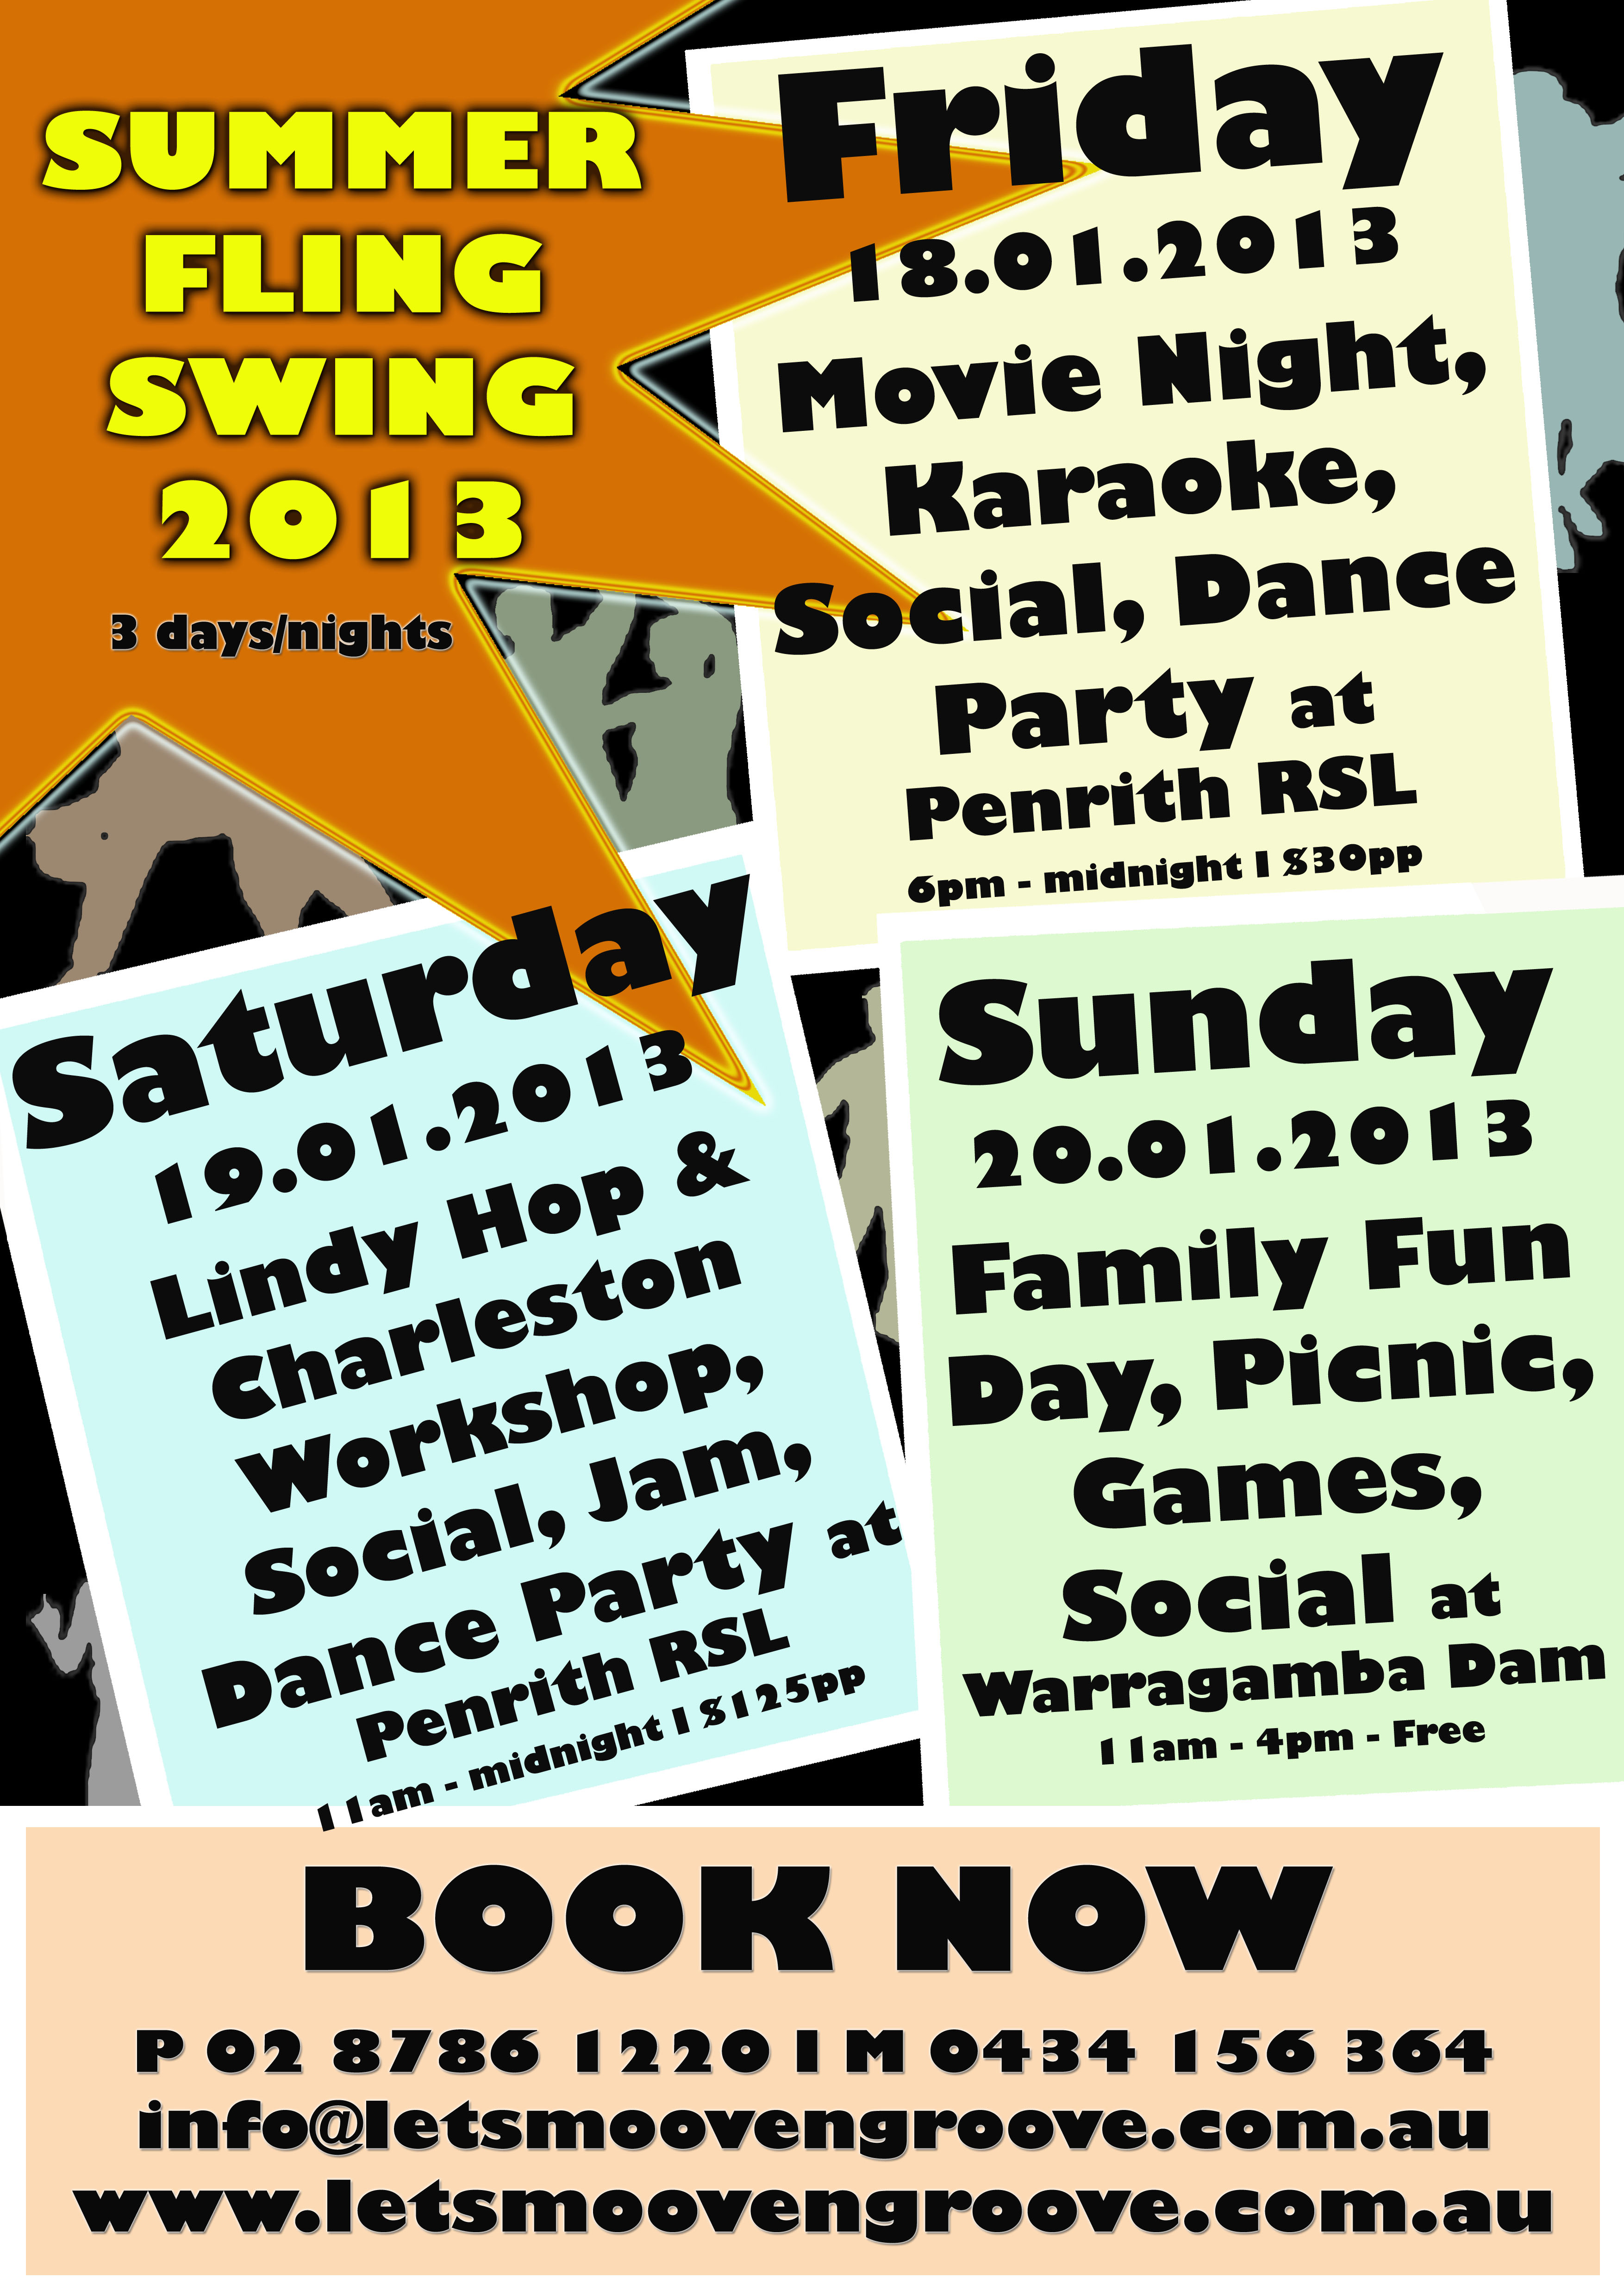 Summer Fling Swing 2013, get ready to have a fling with swing!